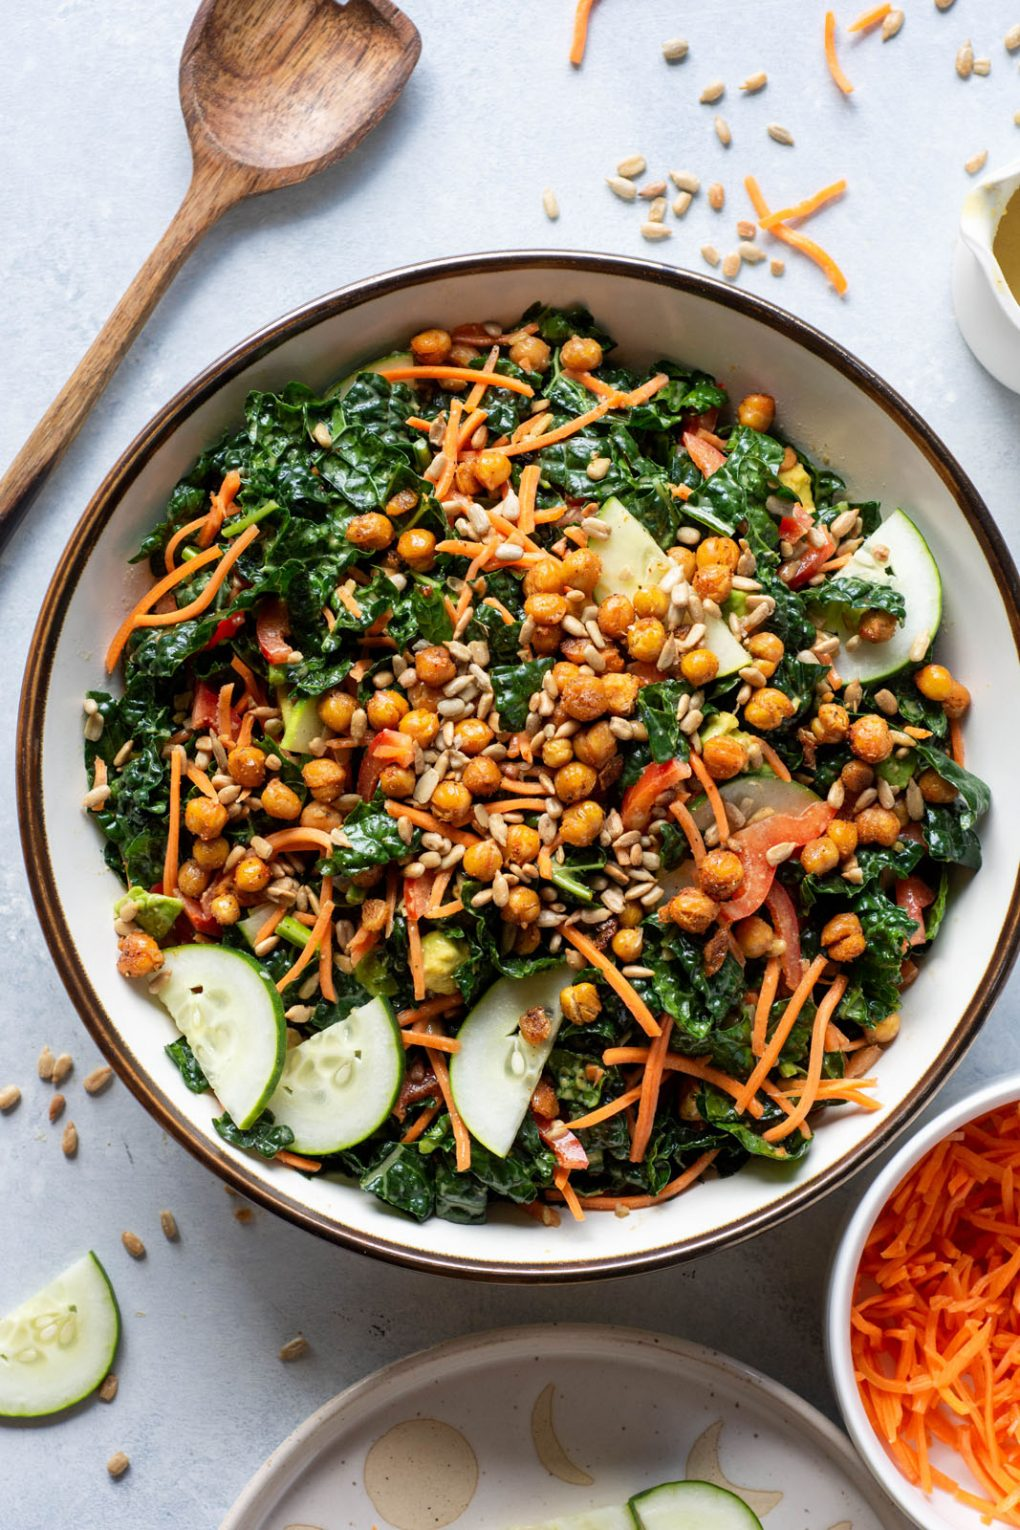 A large white bowl with hearty kale and chickpea salad all tossed together, on a light background next to a big wooden salad spoon and a bowl of shredded carrots.